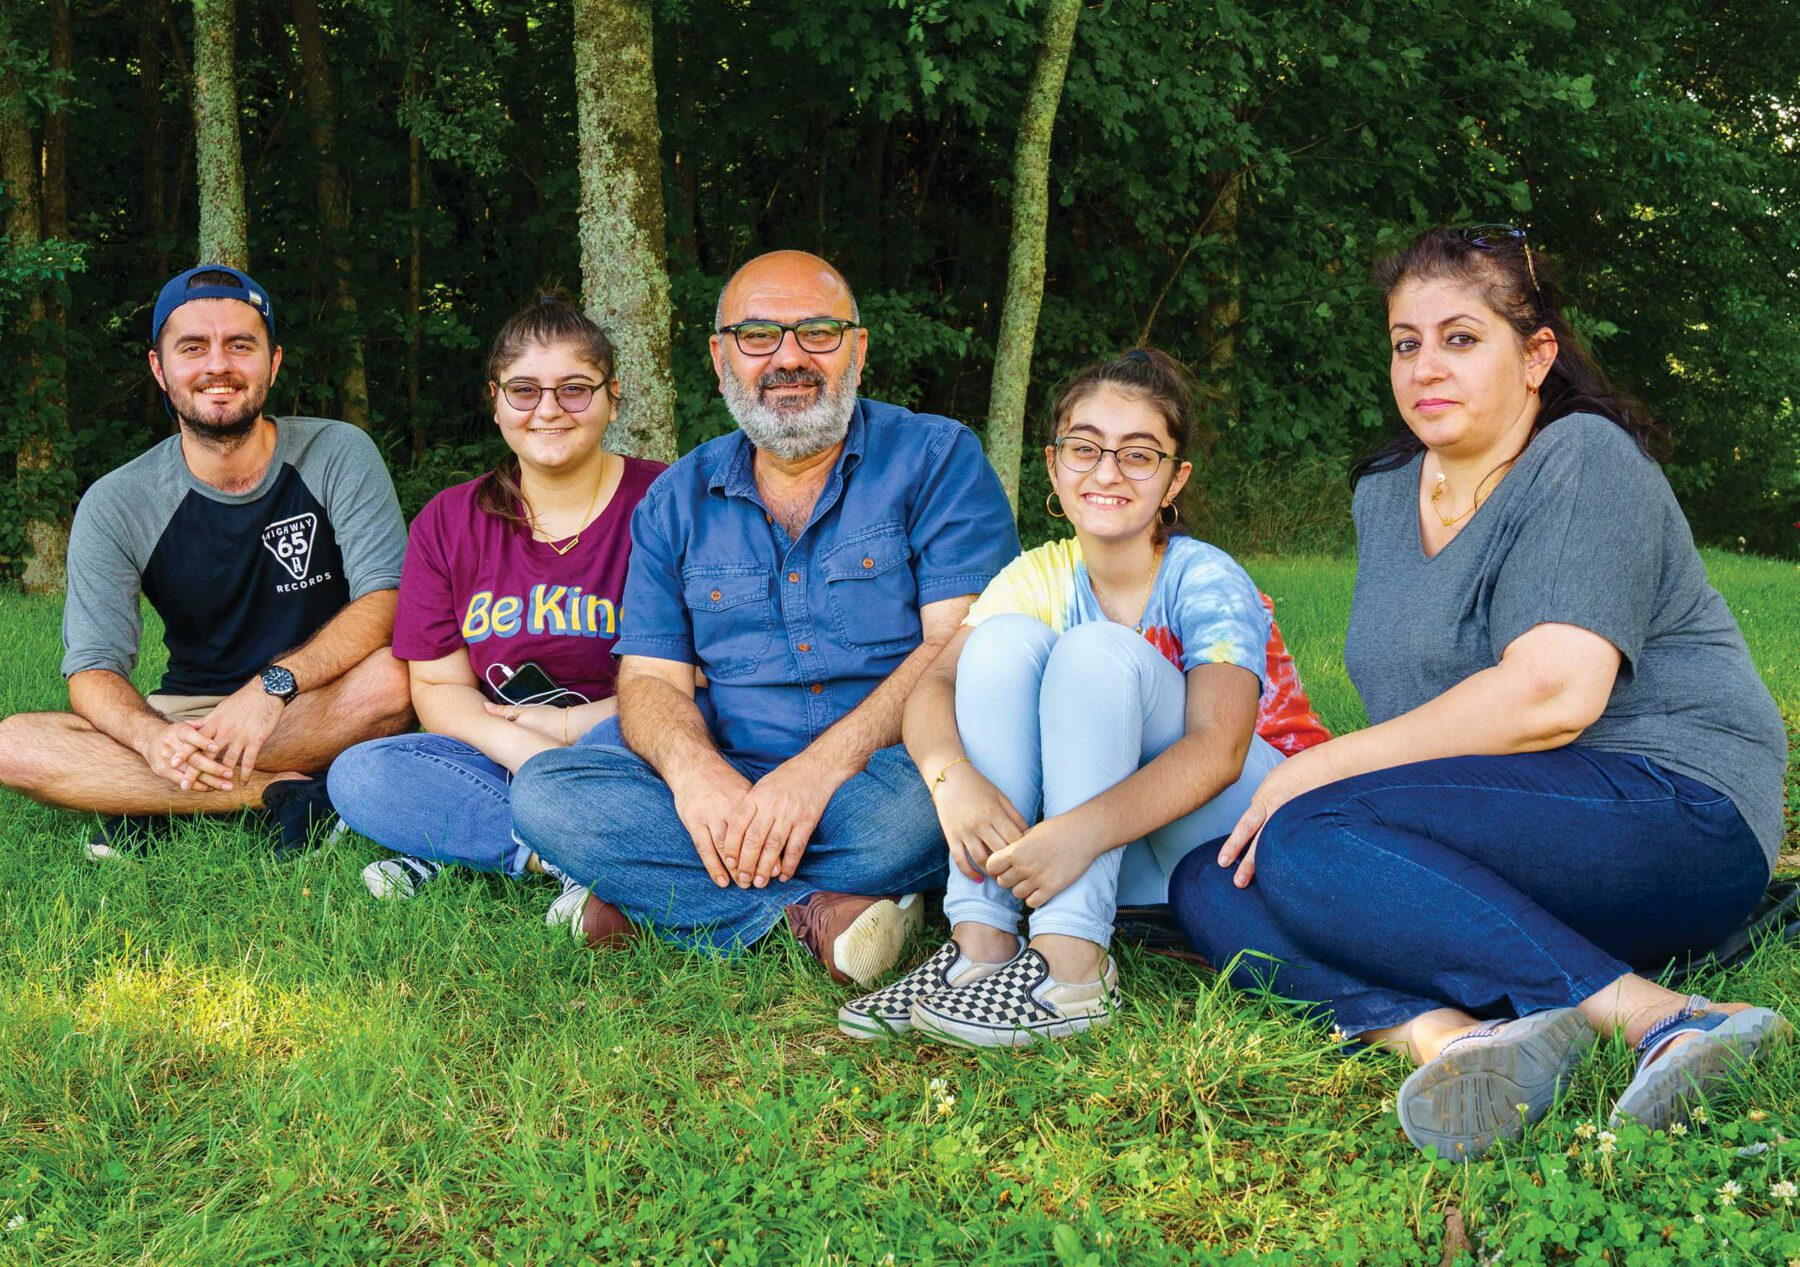 Postindustrial, A Kurdish homeland in Tennessee, Story and Photos by Carmen Gentile and Nish Nalbandian